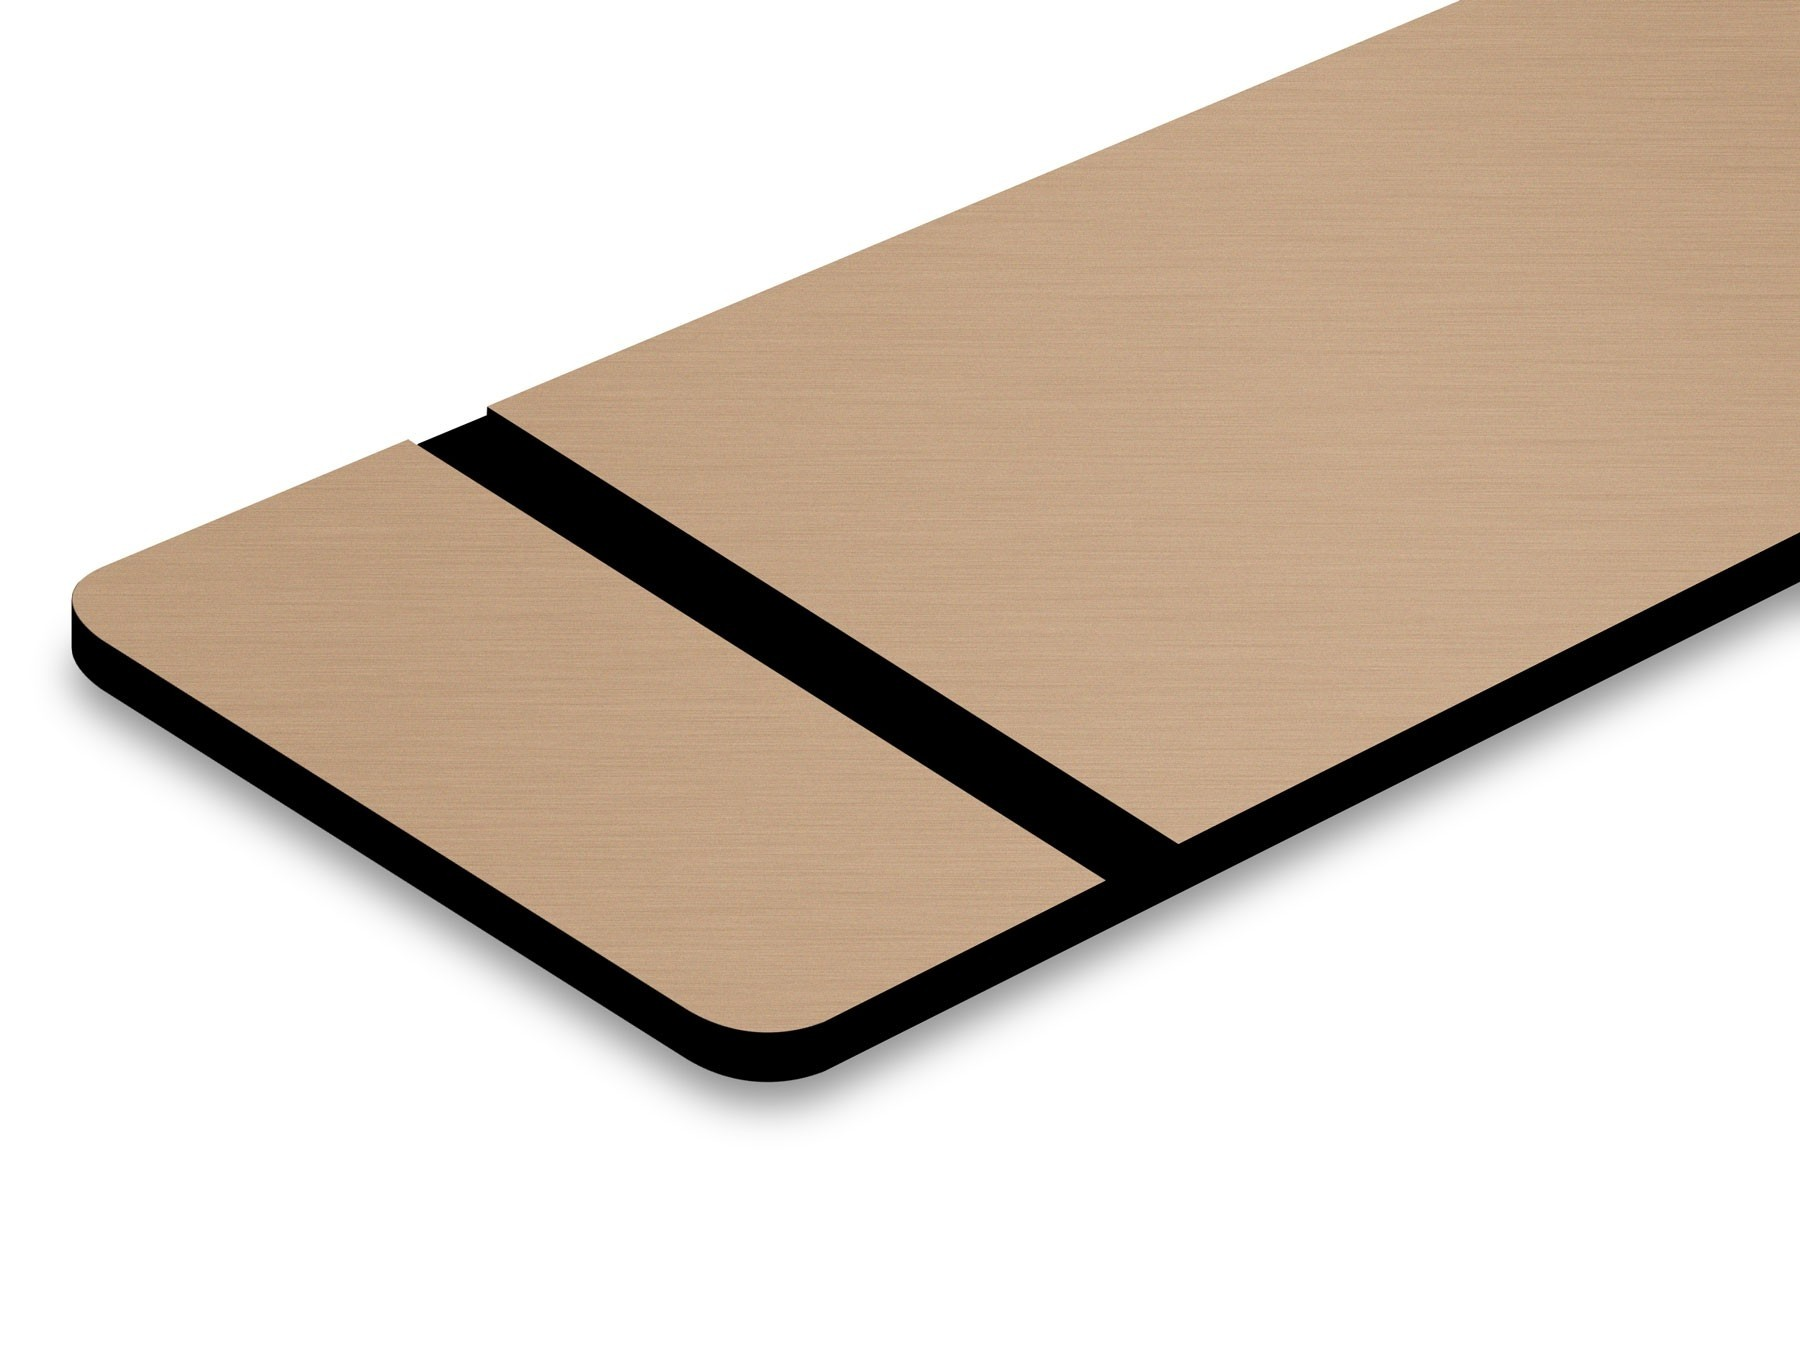 TroLase Metallic Plus, Copper Brushed/Black, 2ply, 0.8 mm